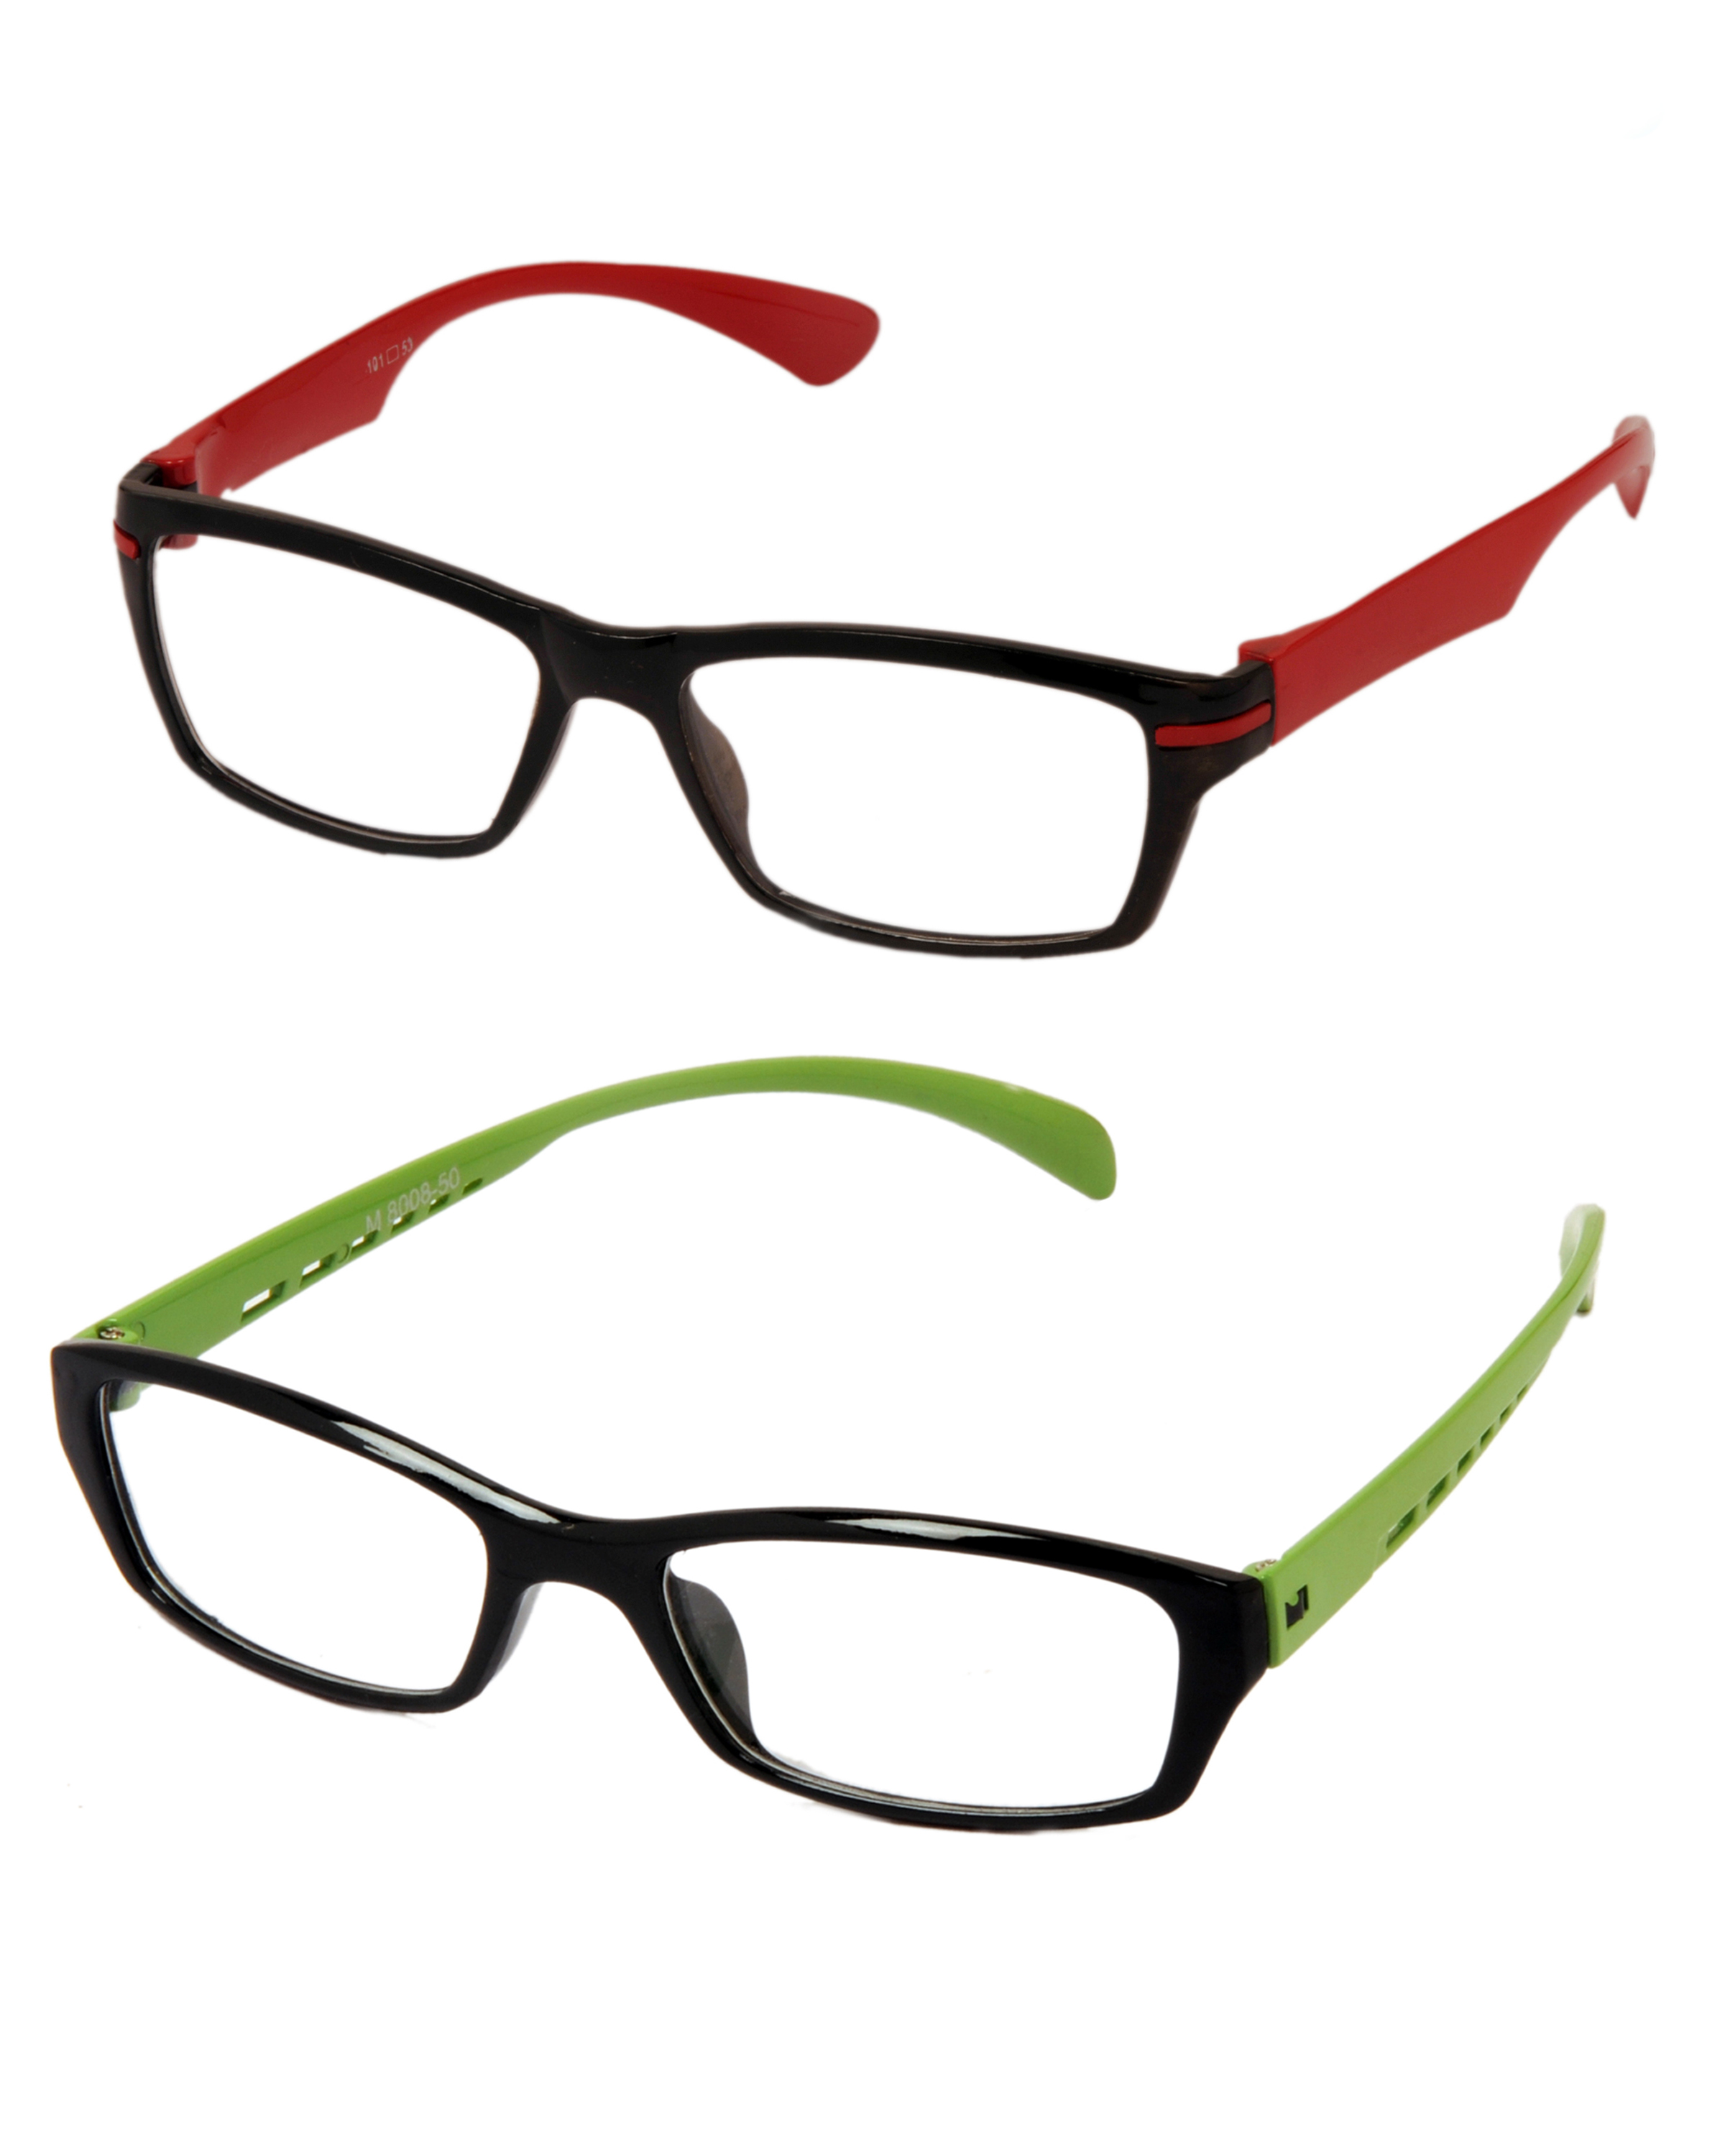 Glasses Frames Locations : Aoito Red & Green Temples Spectacles Frames Eyeglasses For ...